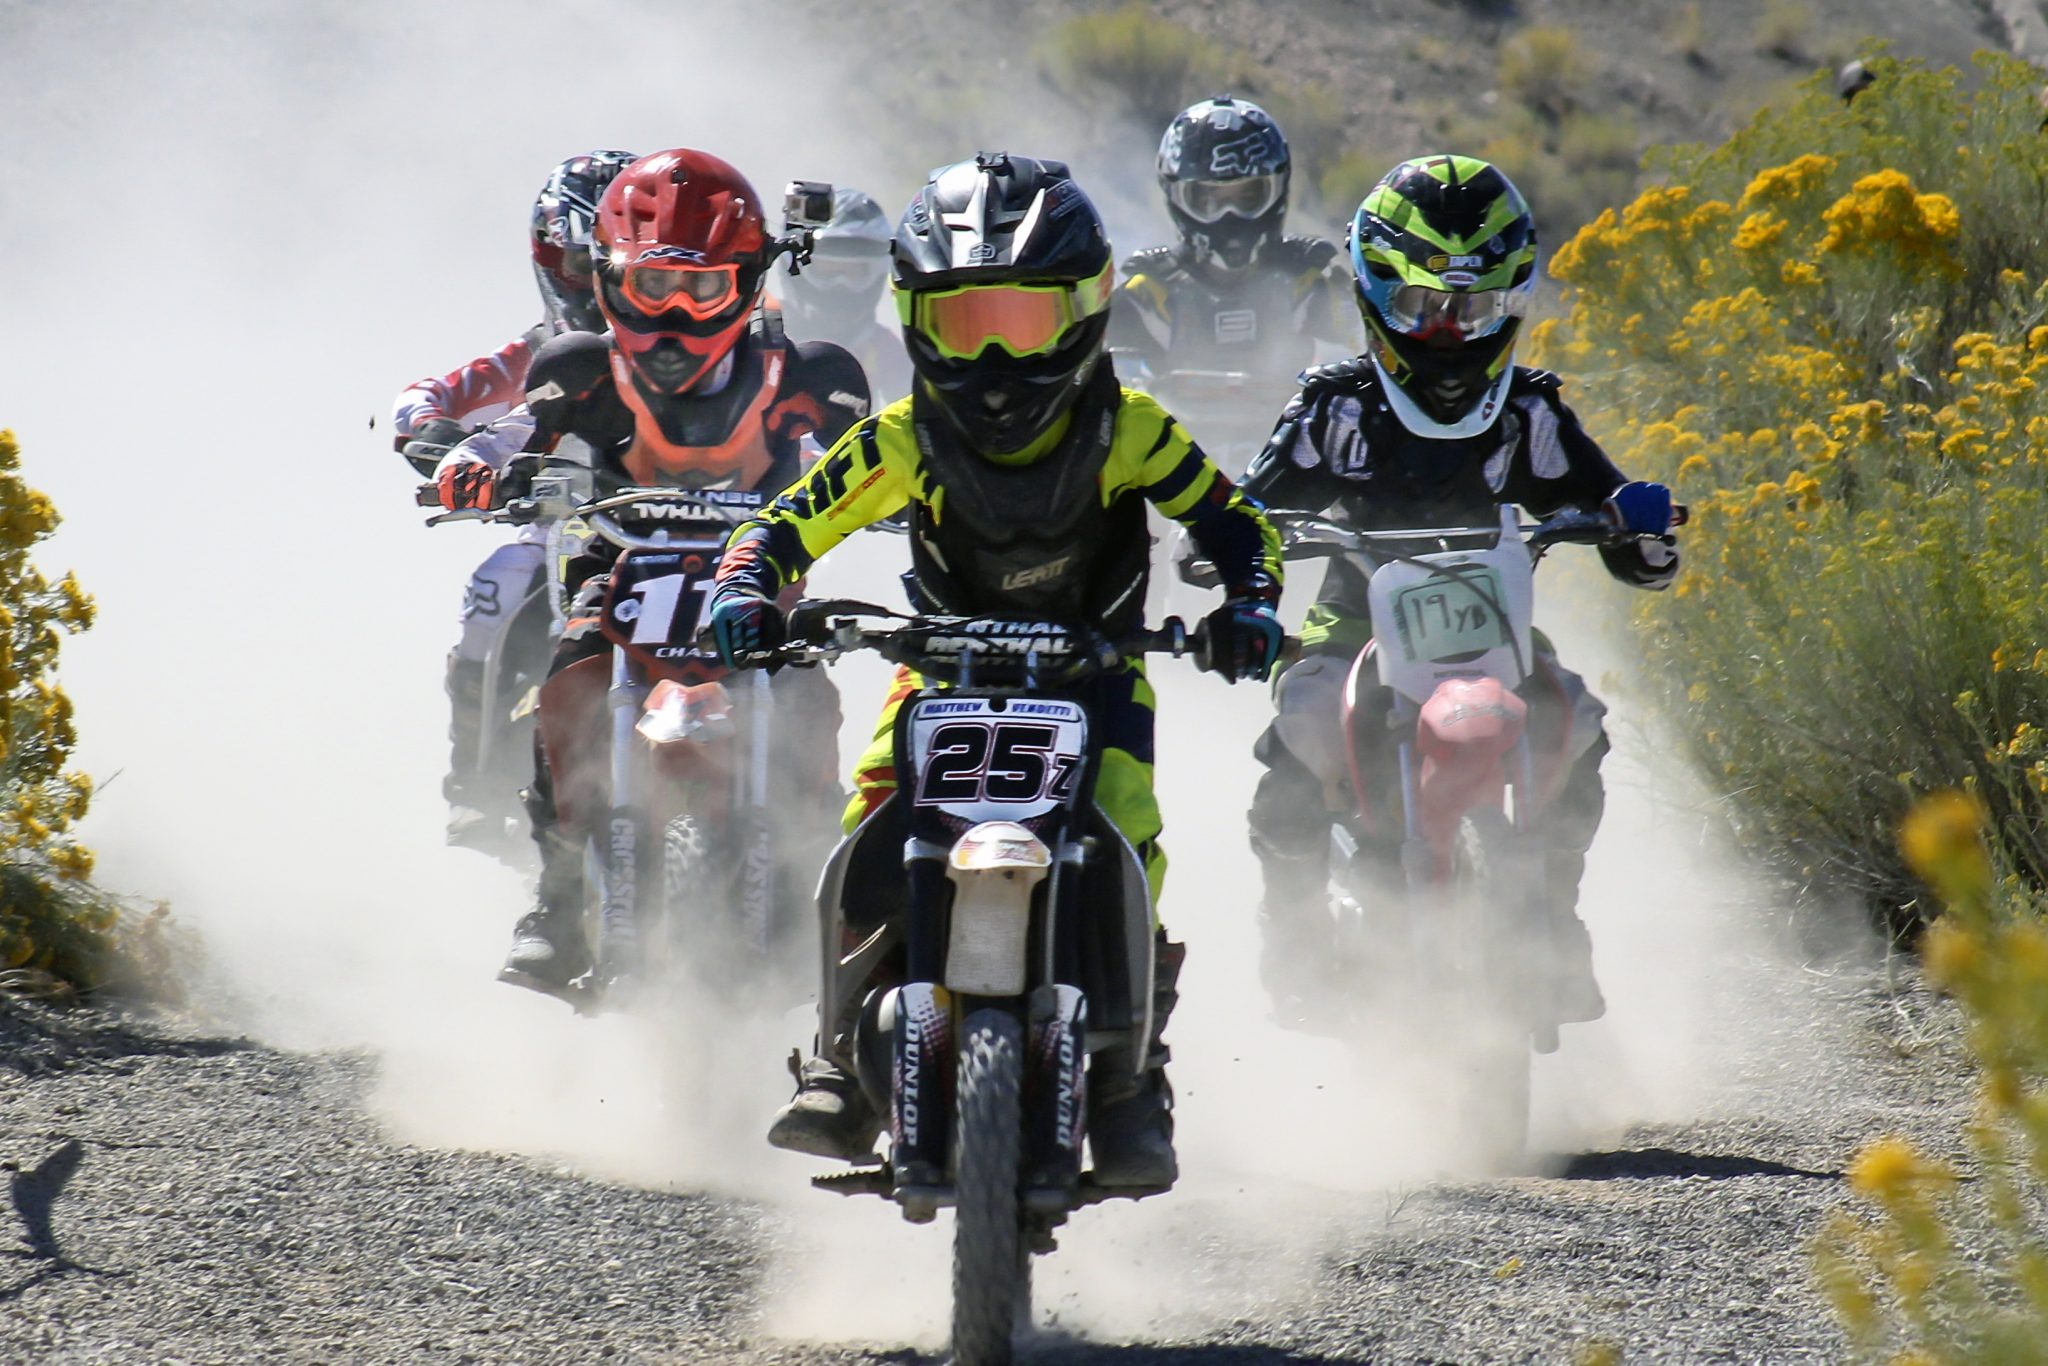 Racers compete in Pioche to honor 'P-Rob'